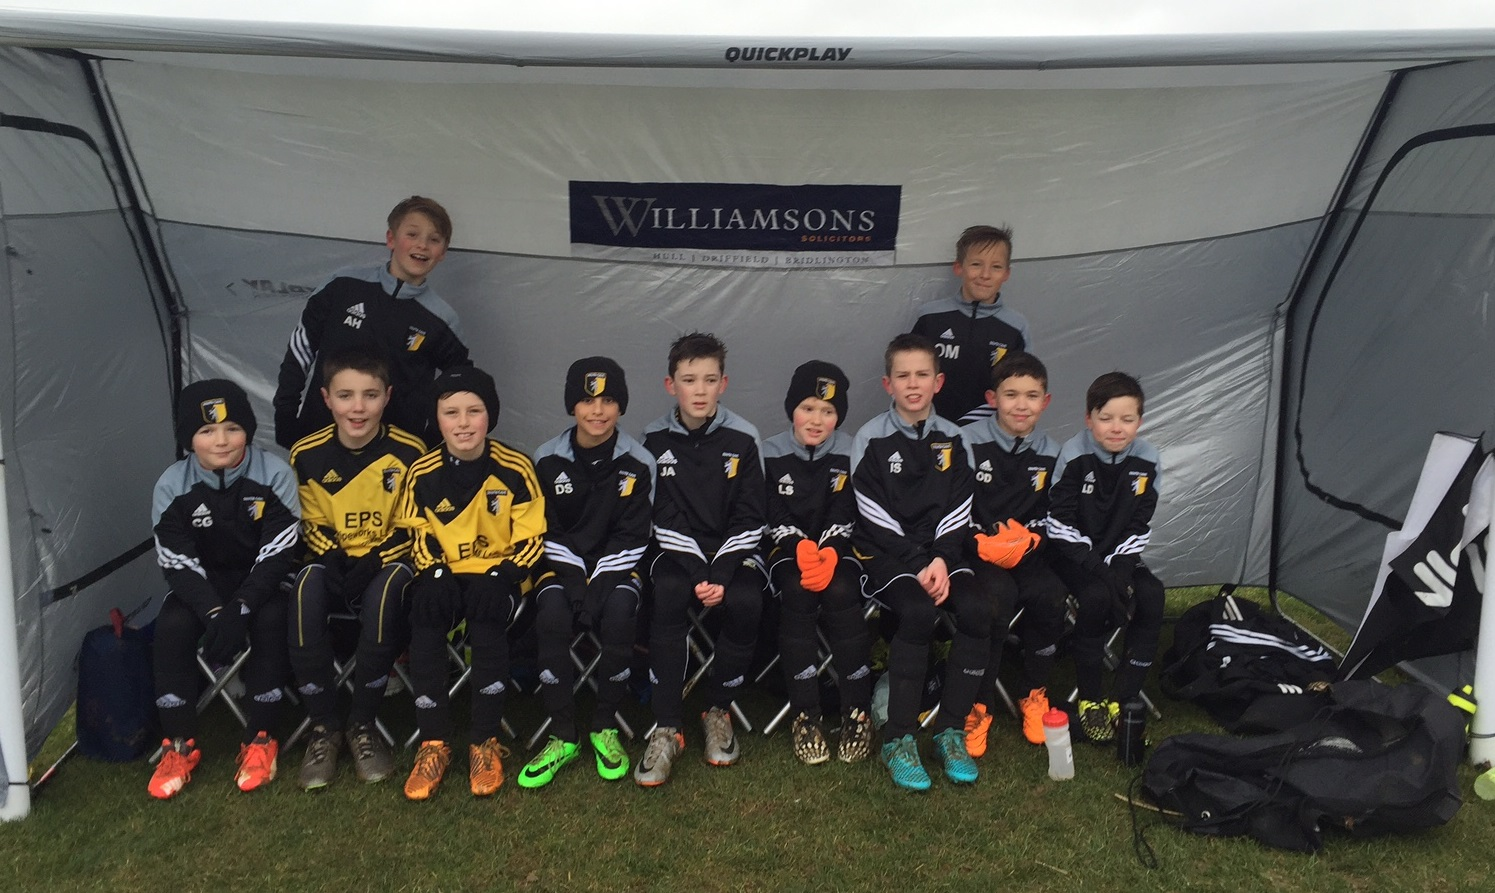 South Cave Tigers U11's photo